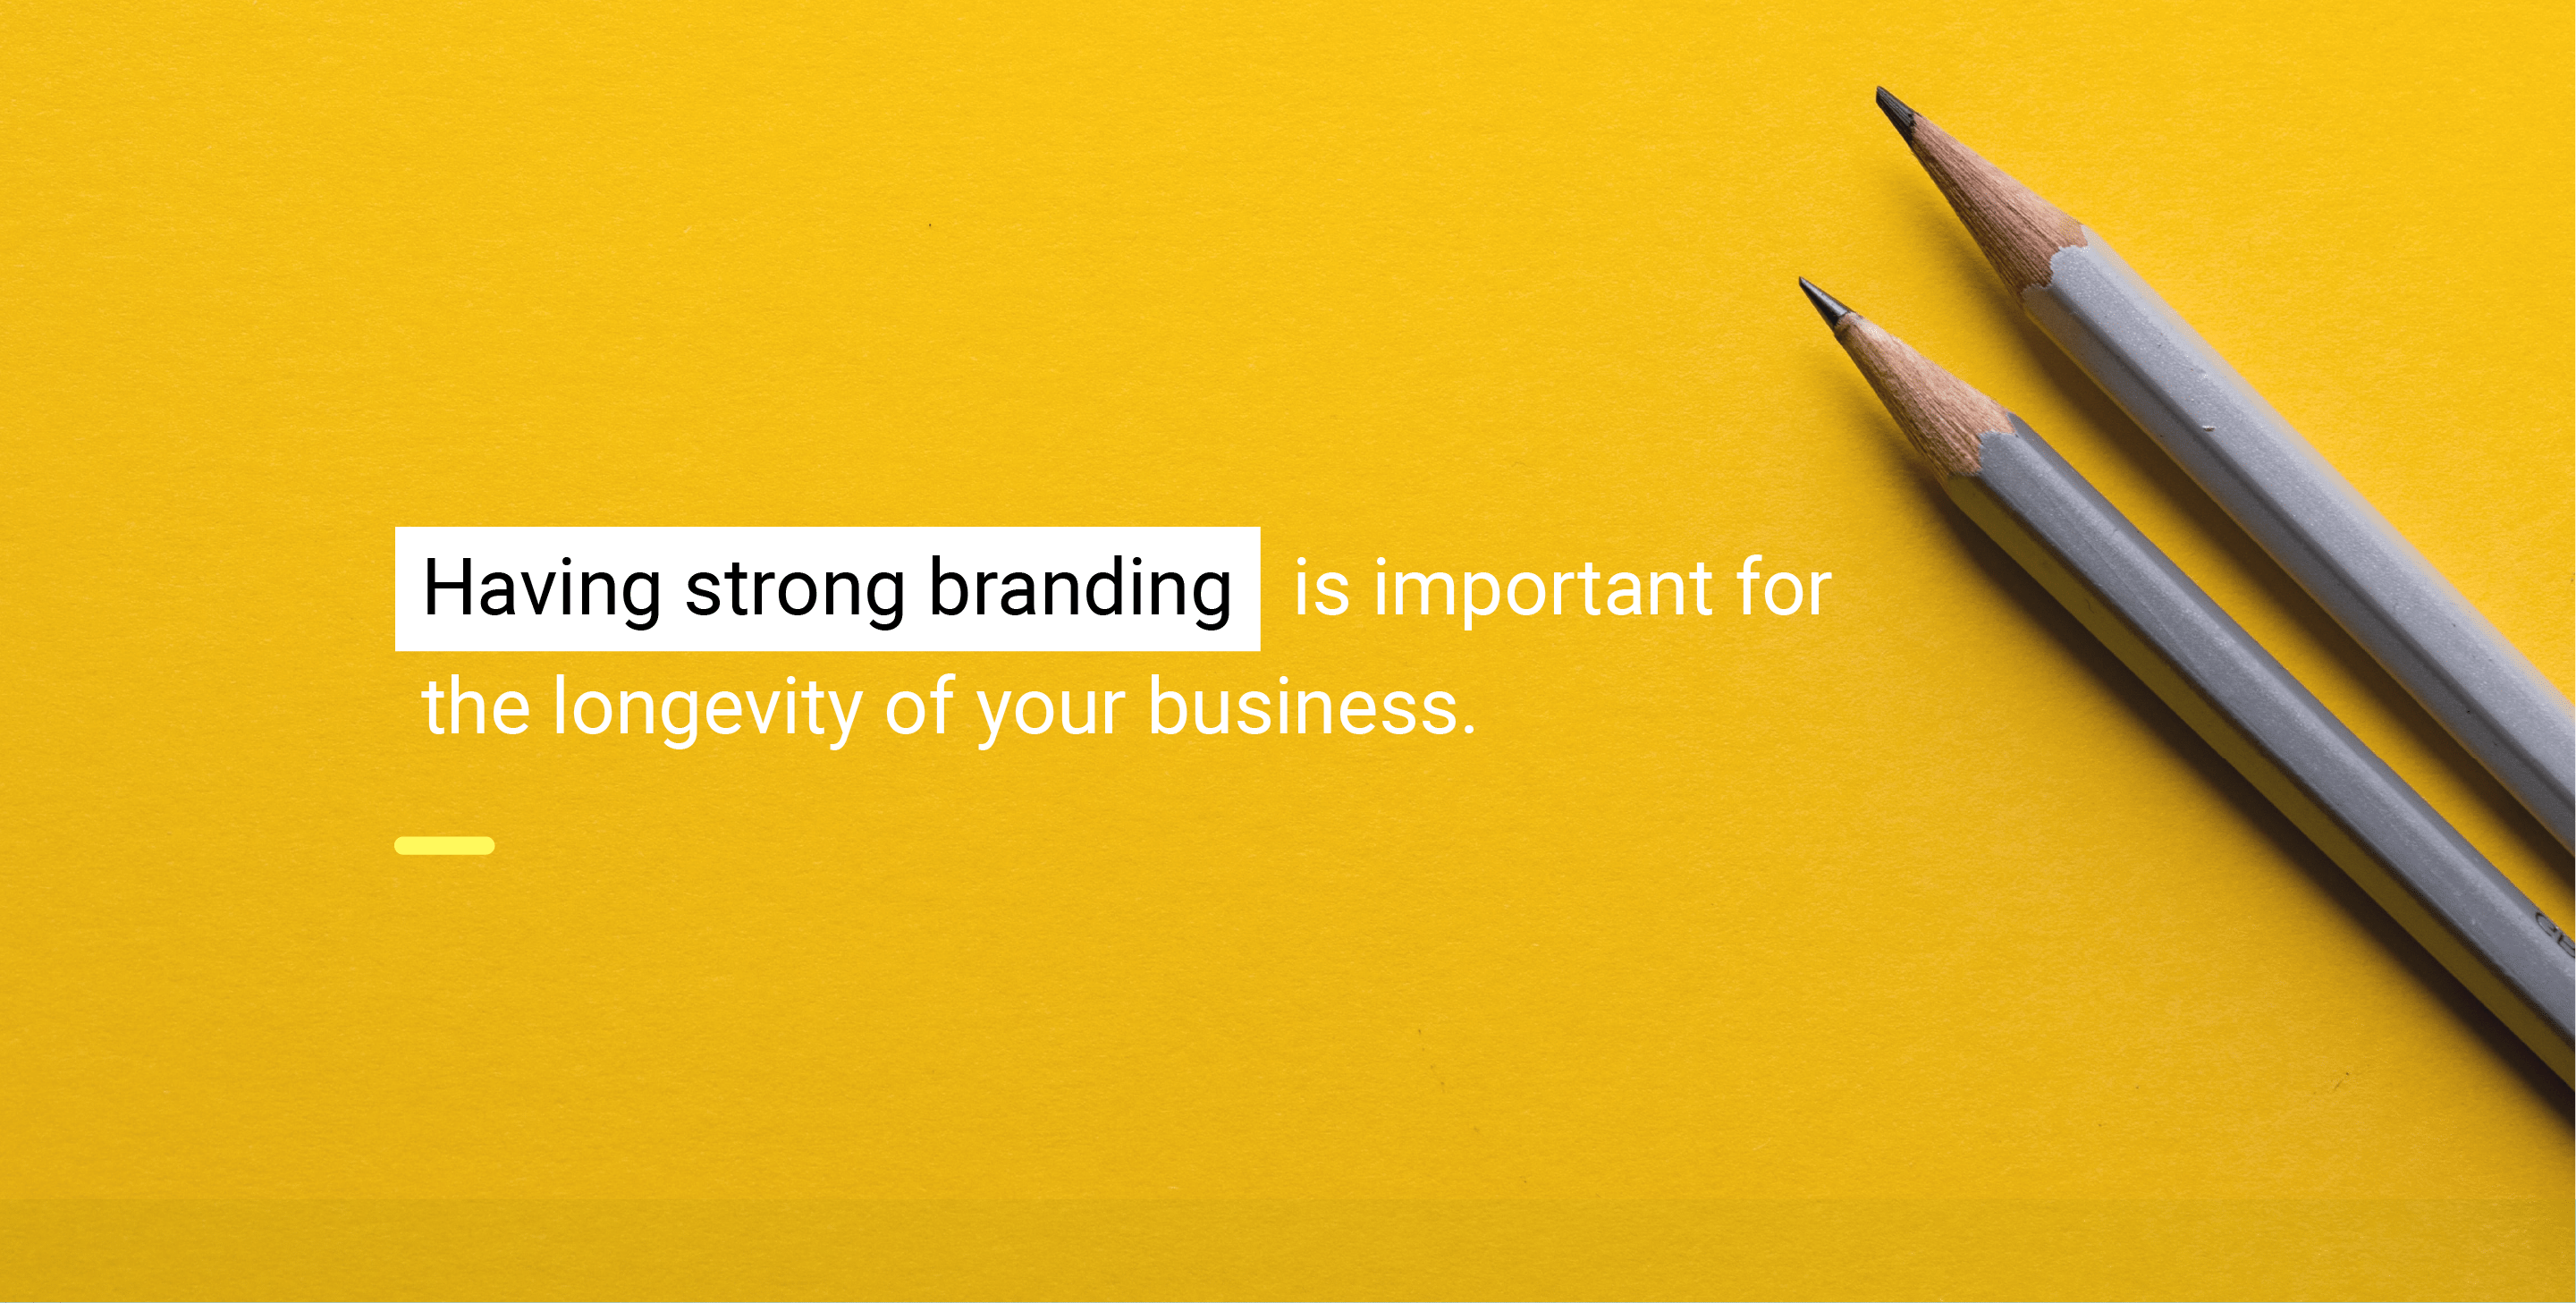 Having strong branding is important for the longevity of your business.